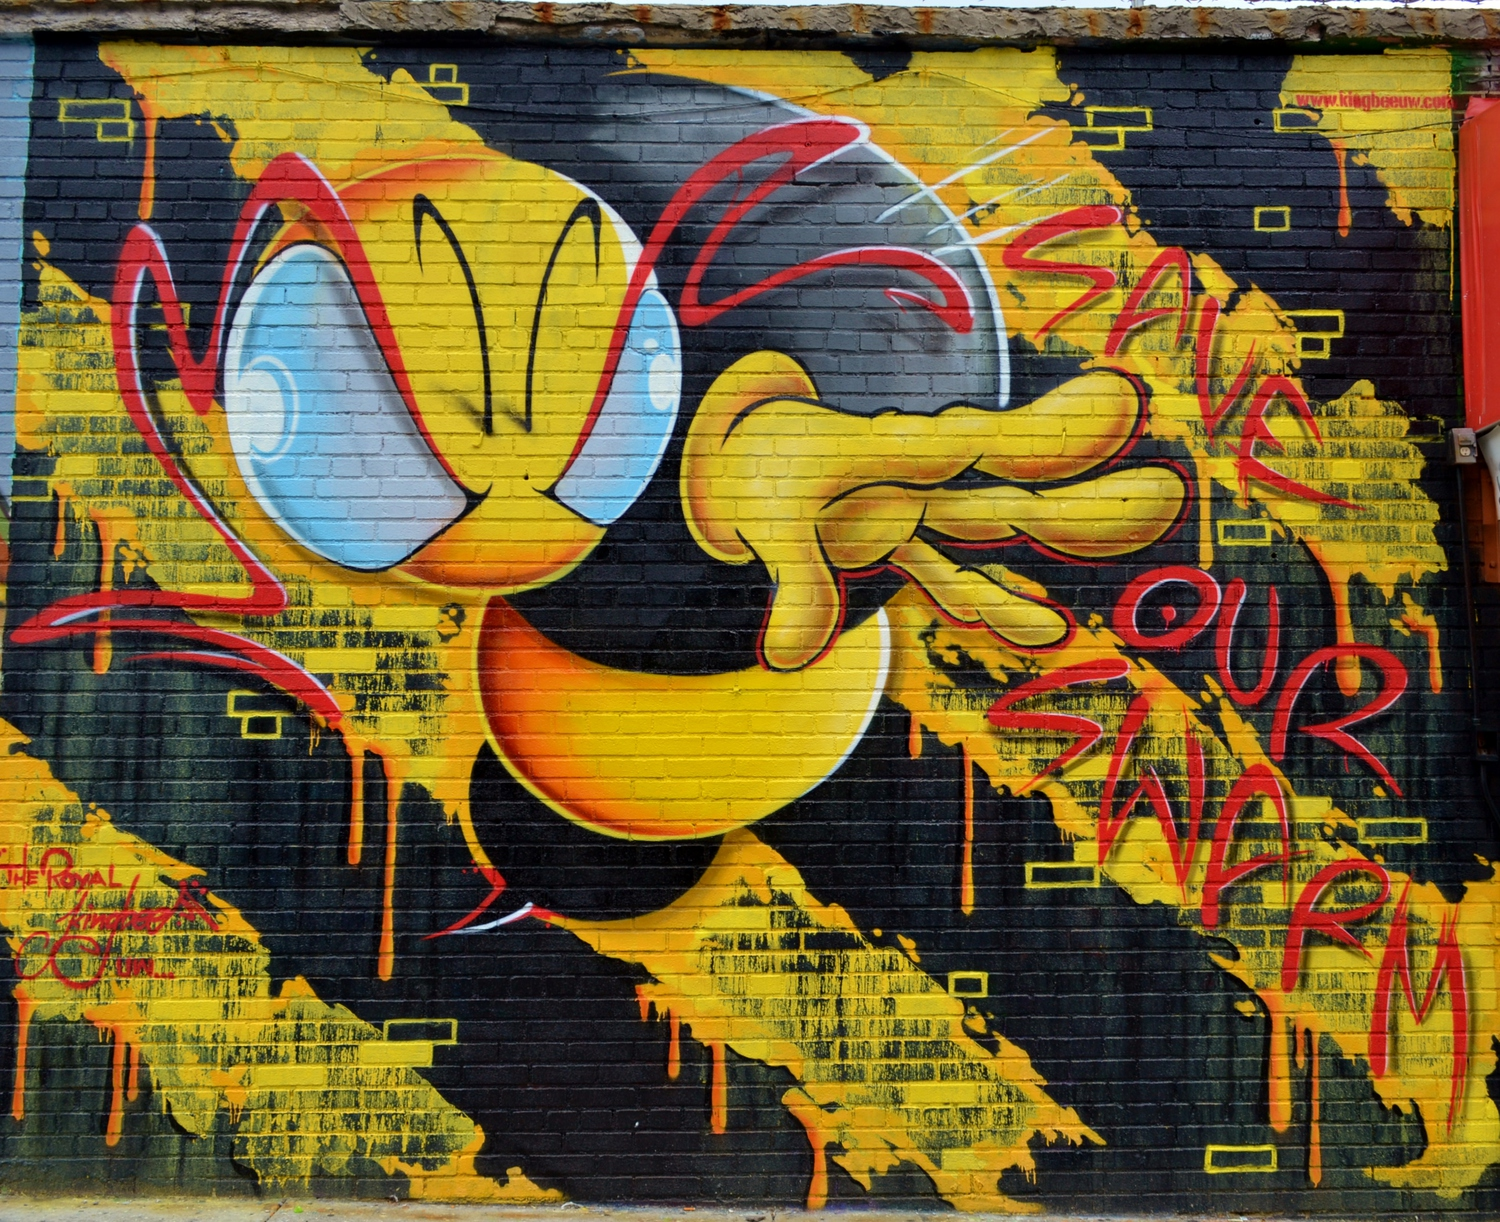 Welling Court: The Royal Kingbee, 9.21.14 | A visit to the Welling Court Mural Project in Queens on 9.21.14. With 5 Pointz gone, Welling Court has become the new graffiti center in the borough. I'll try to include the individual artists, great talent/ work from everyone.